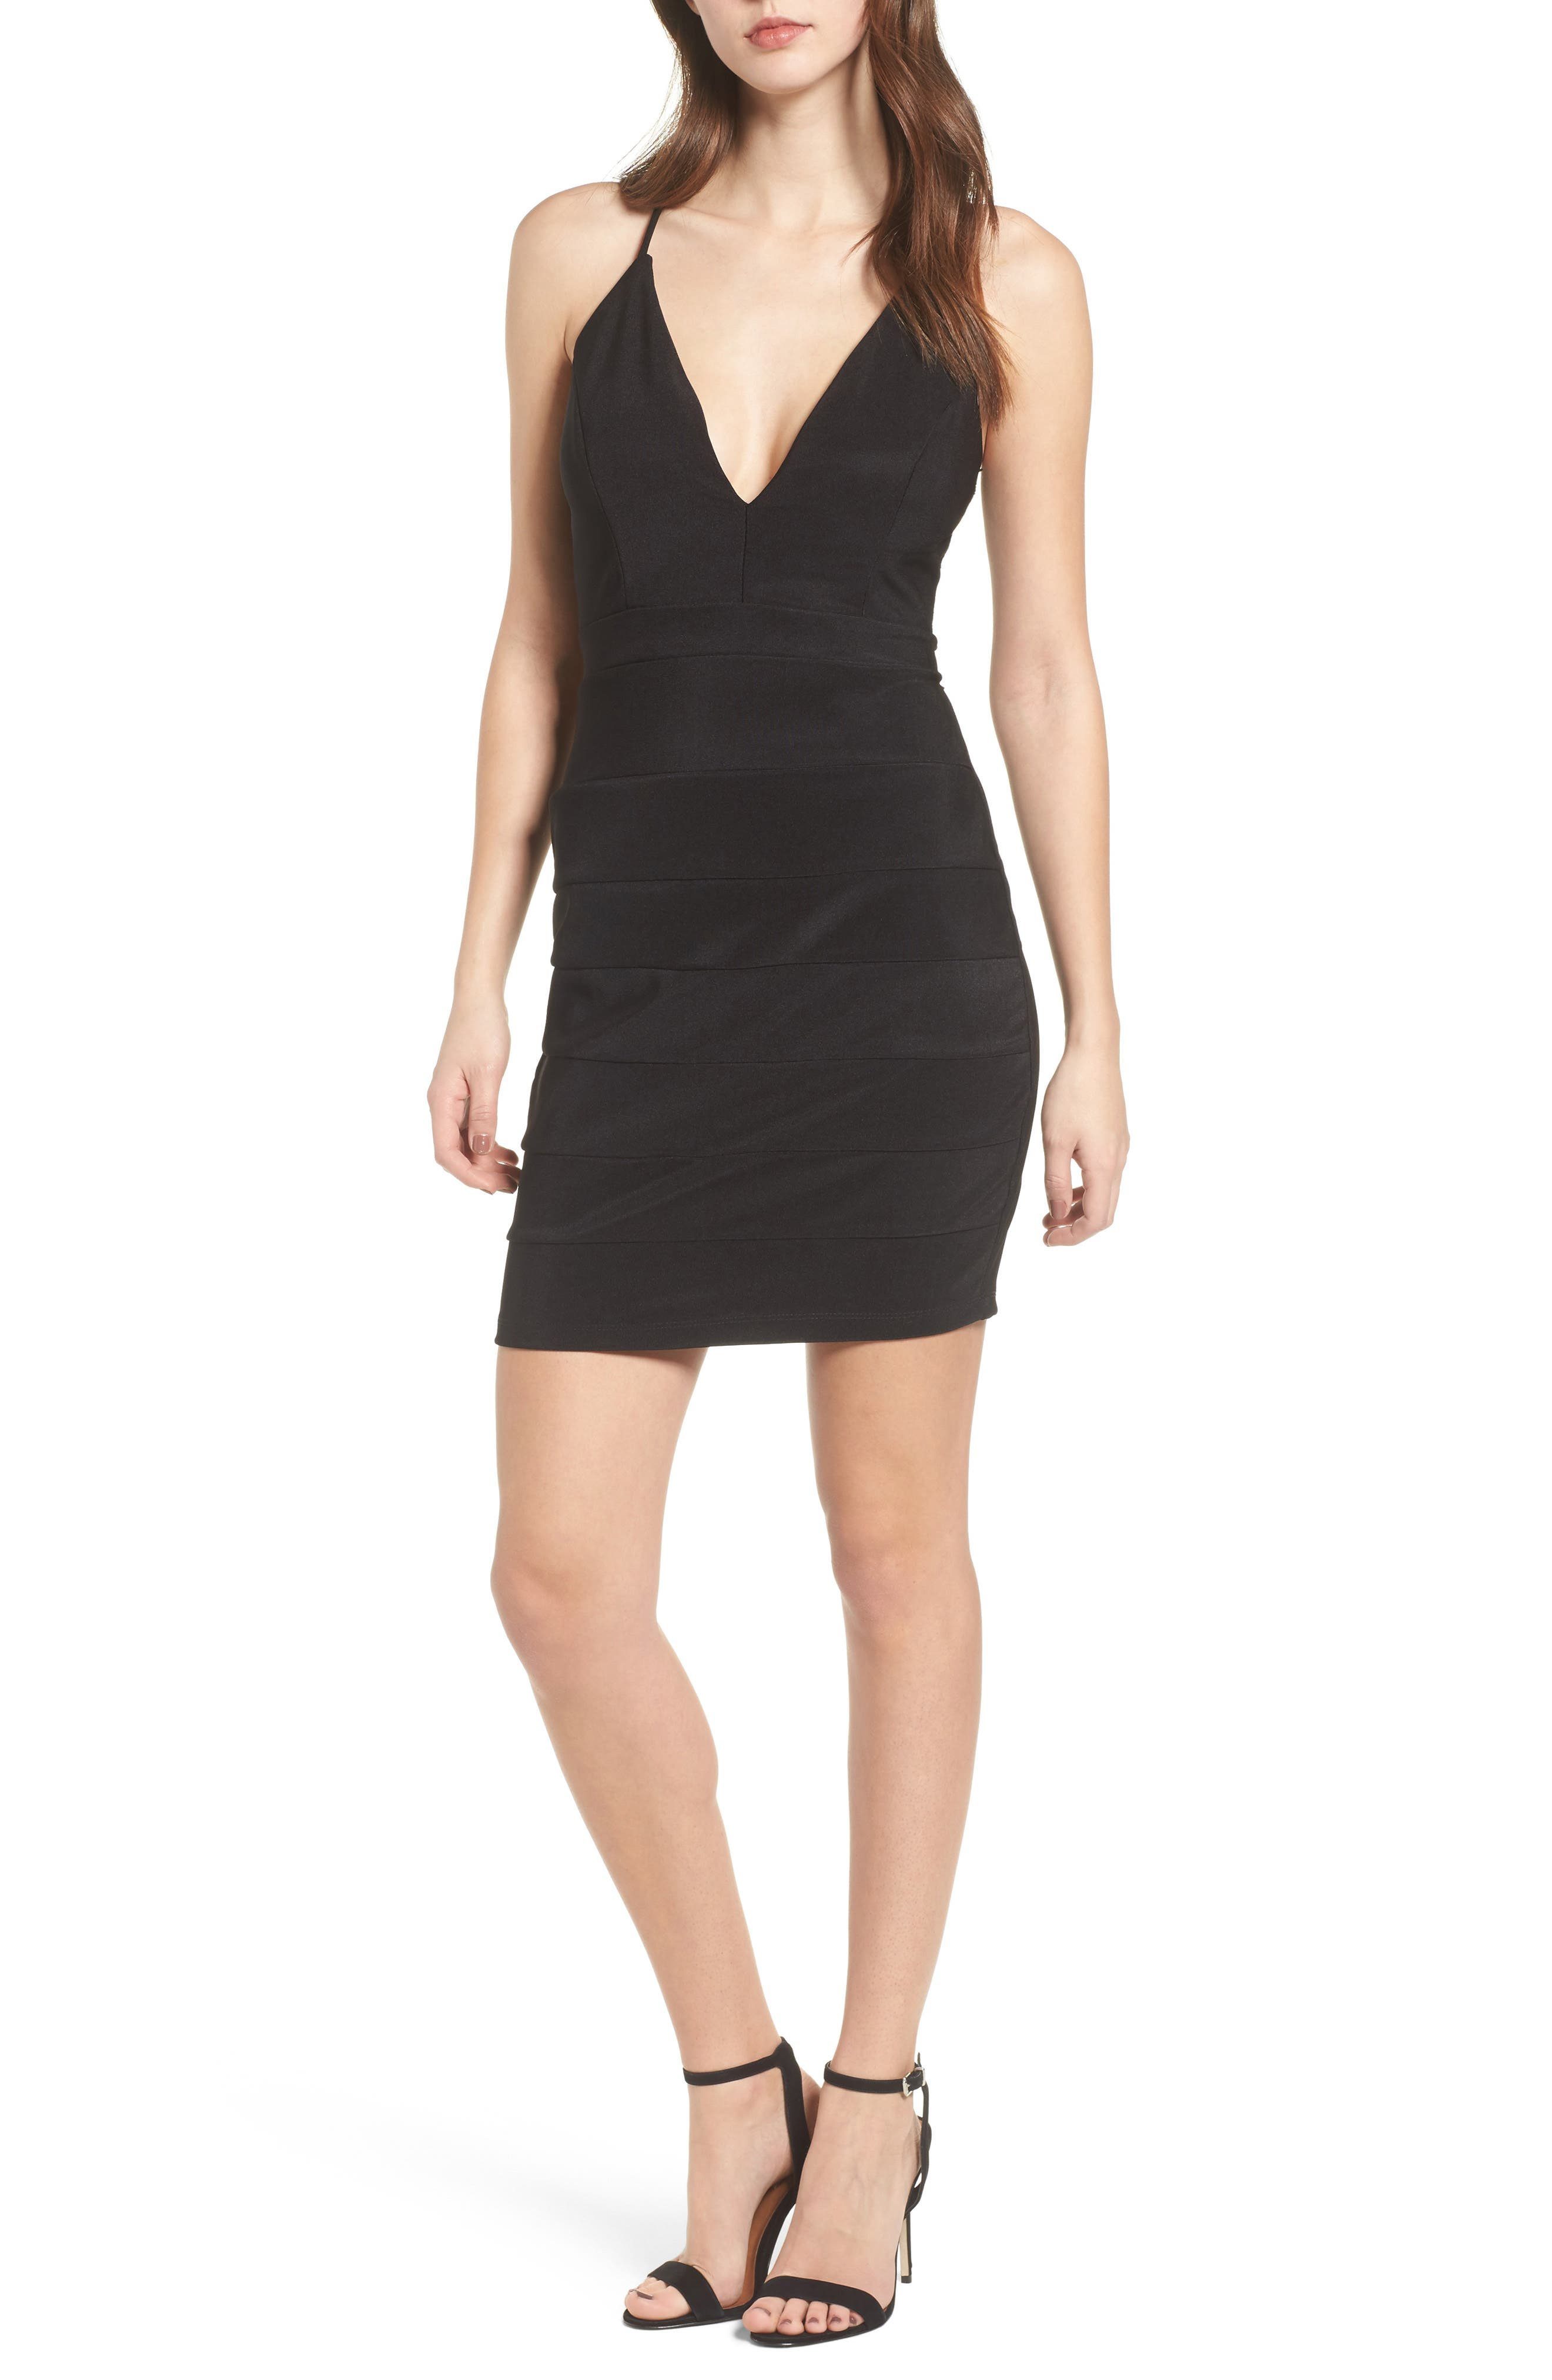 LOVE, NICKIE LEW Lace Back Body-Con Dress, Main, color, 001